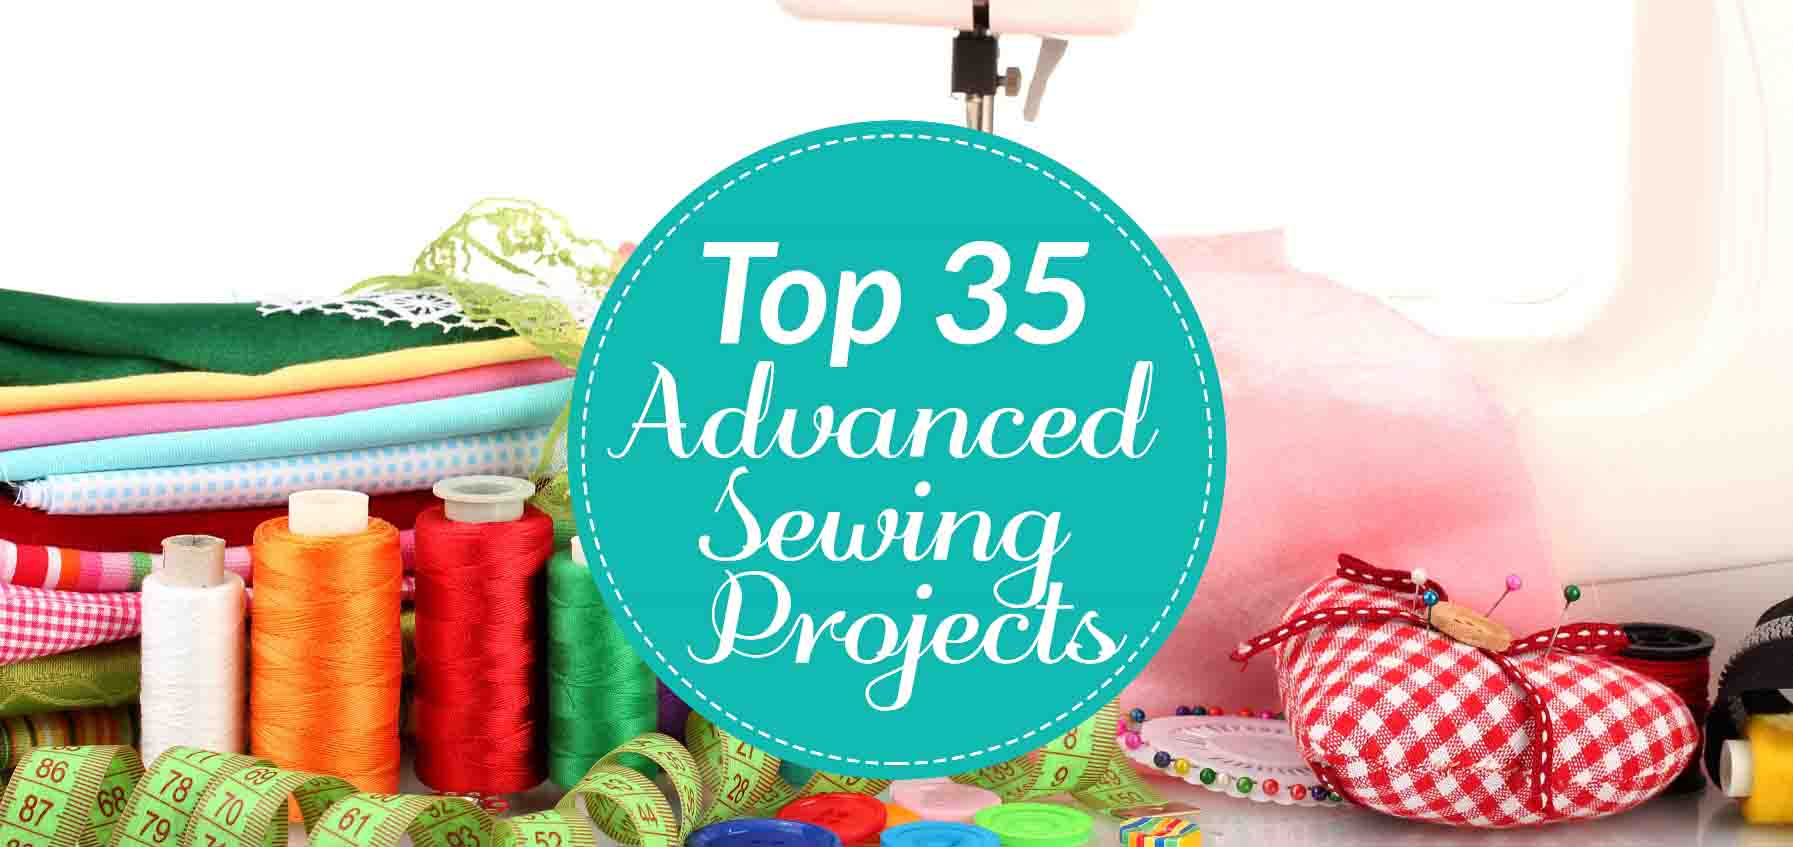 Top 35 Advanced Sewing Projects